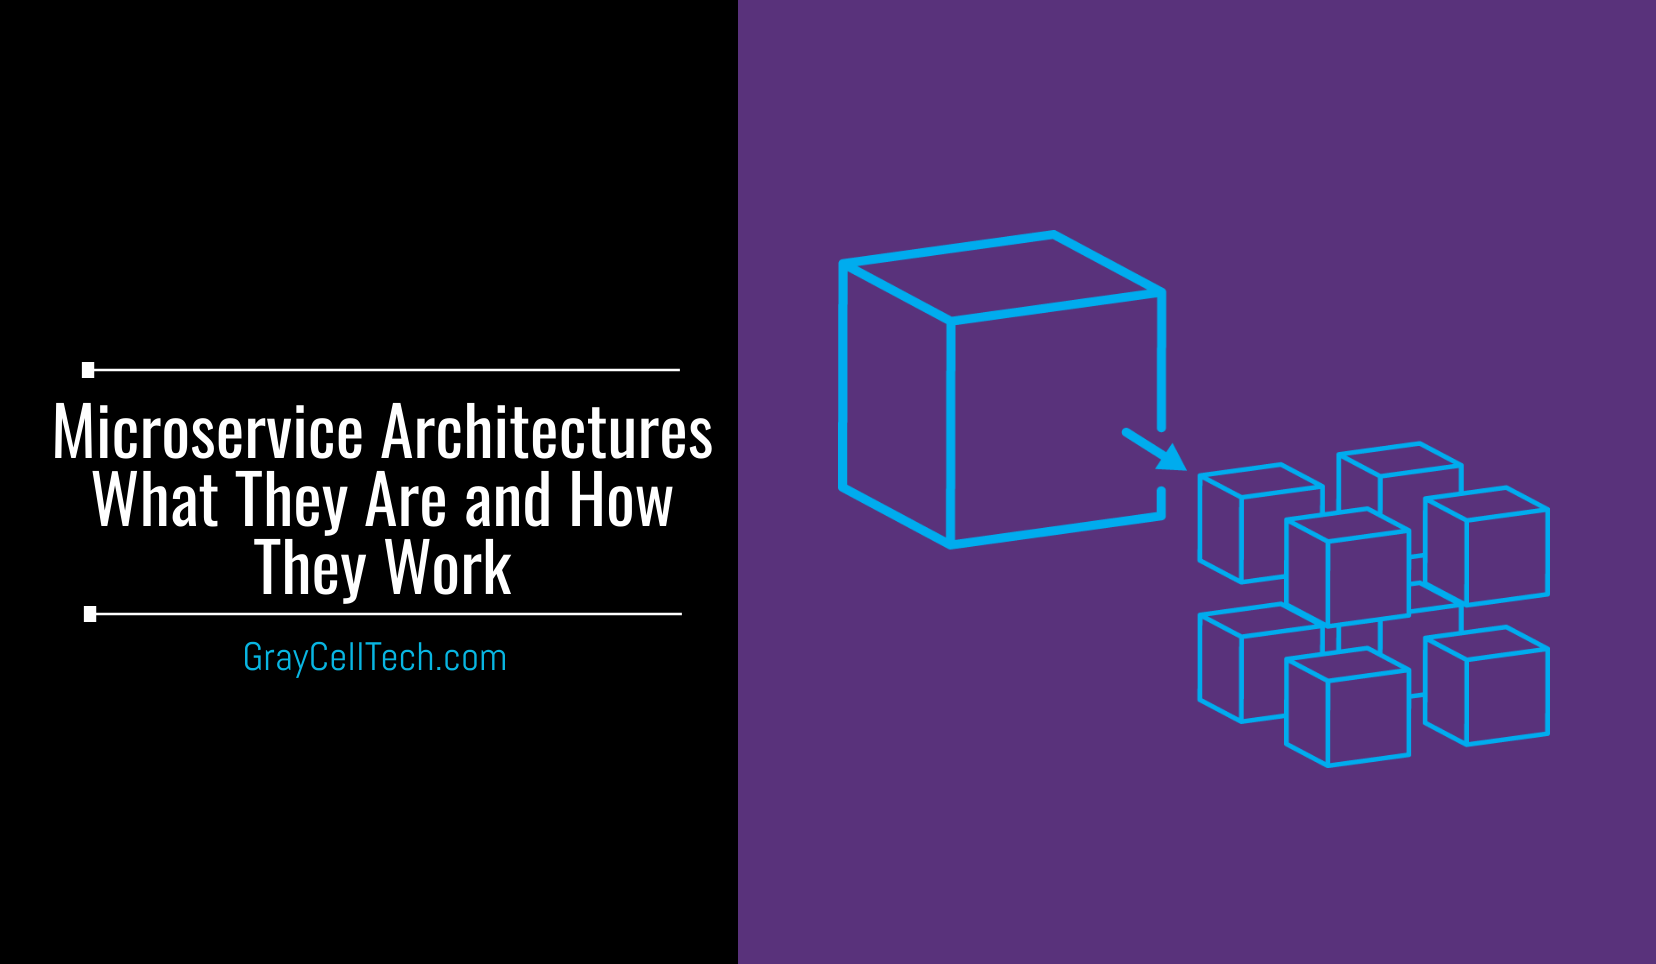 What Are Microservices Architecture and How do they work